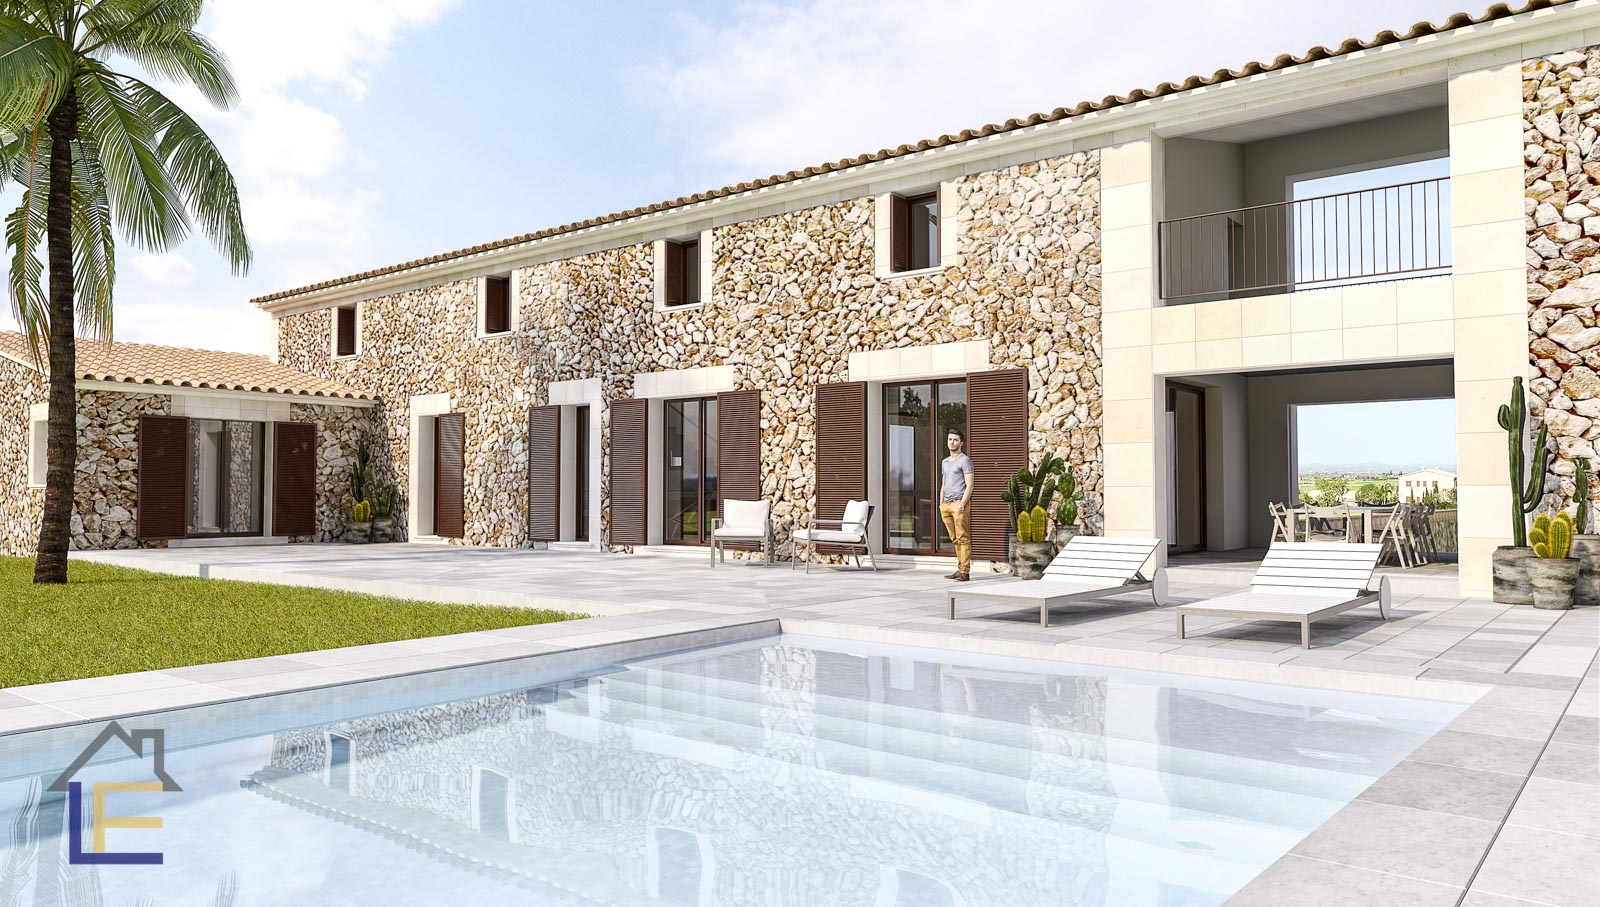 Modern finca your dreams with rustic details